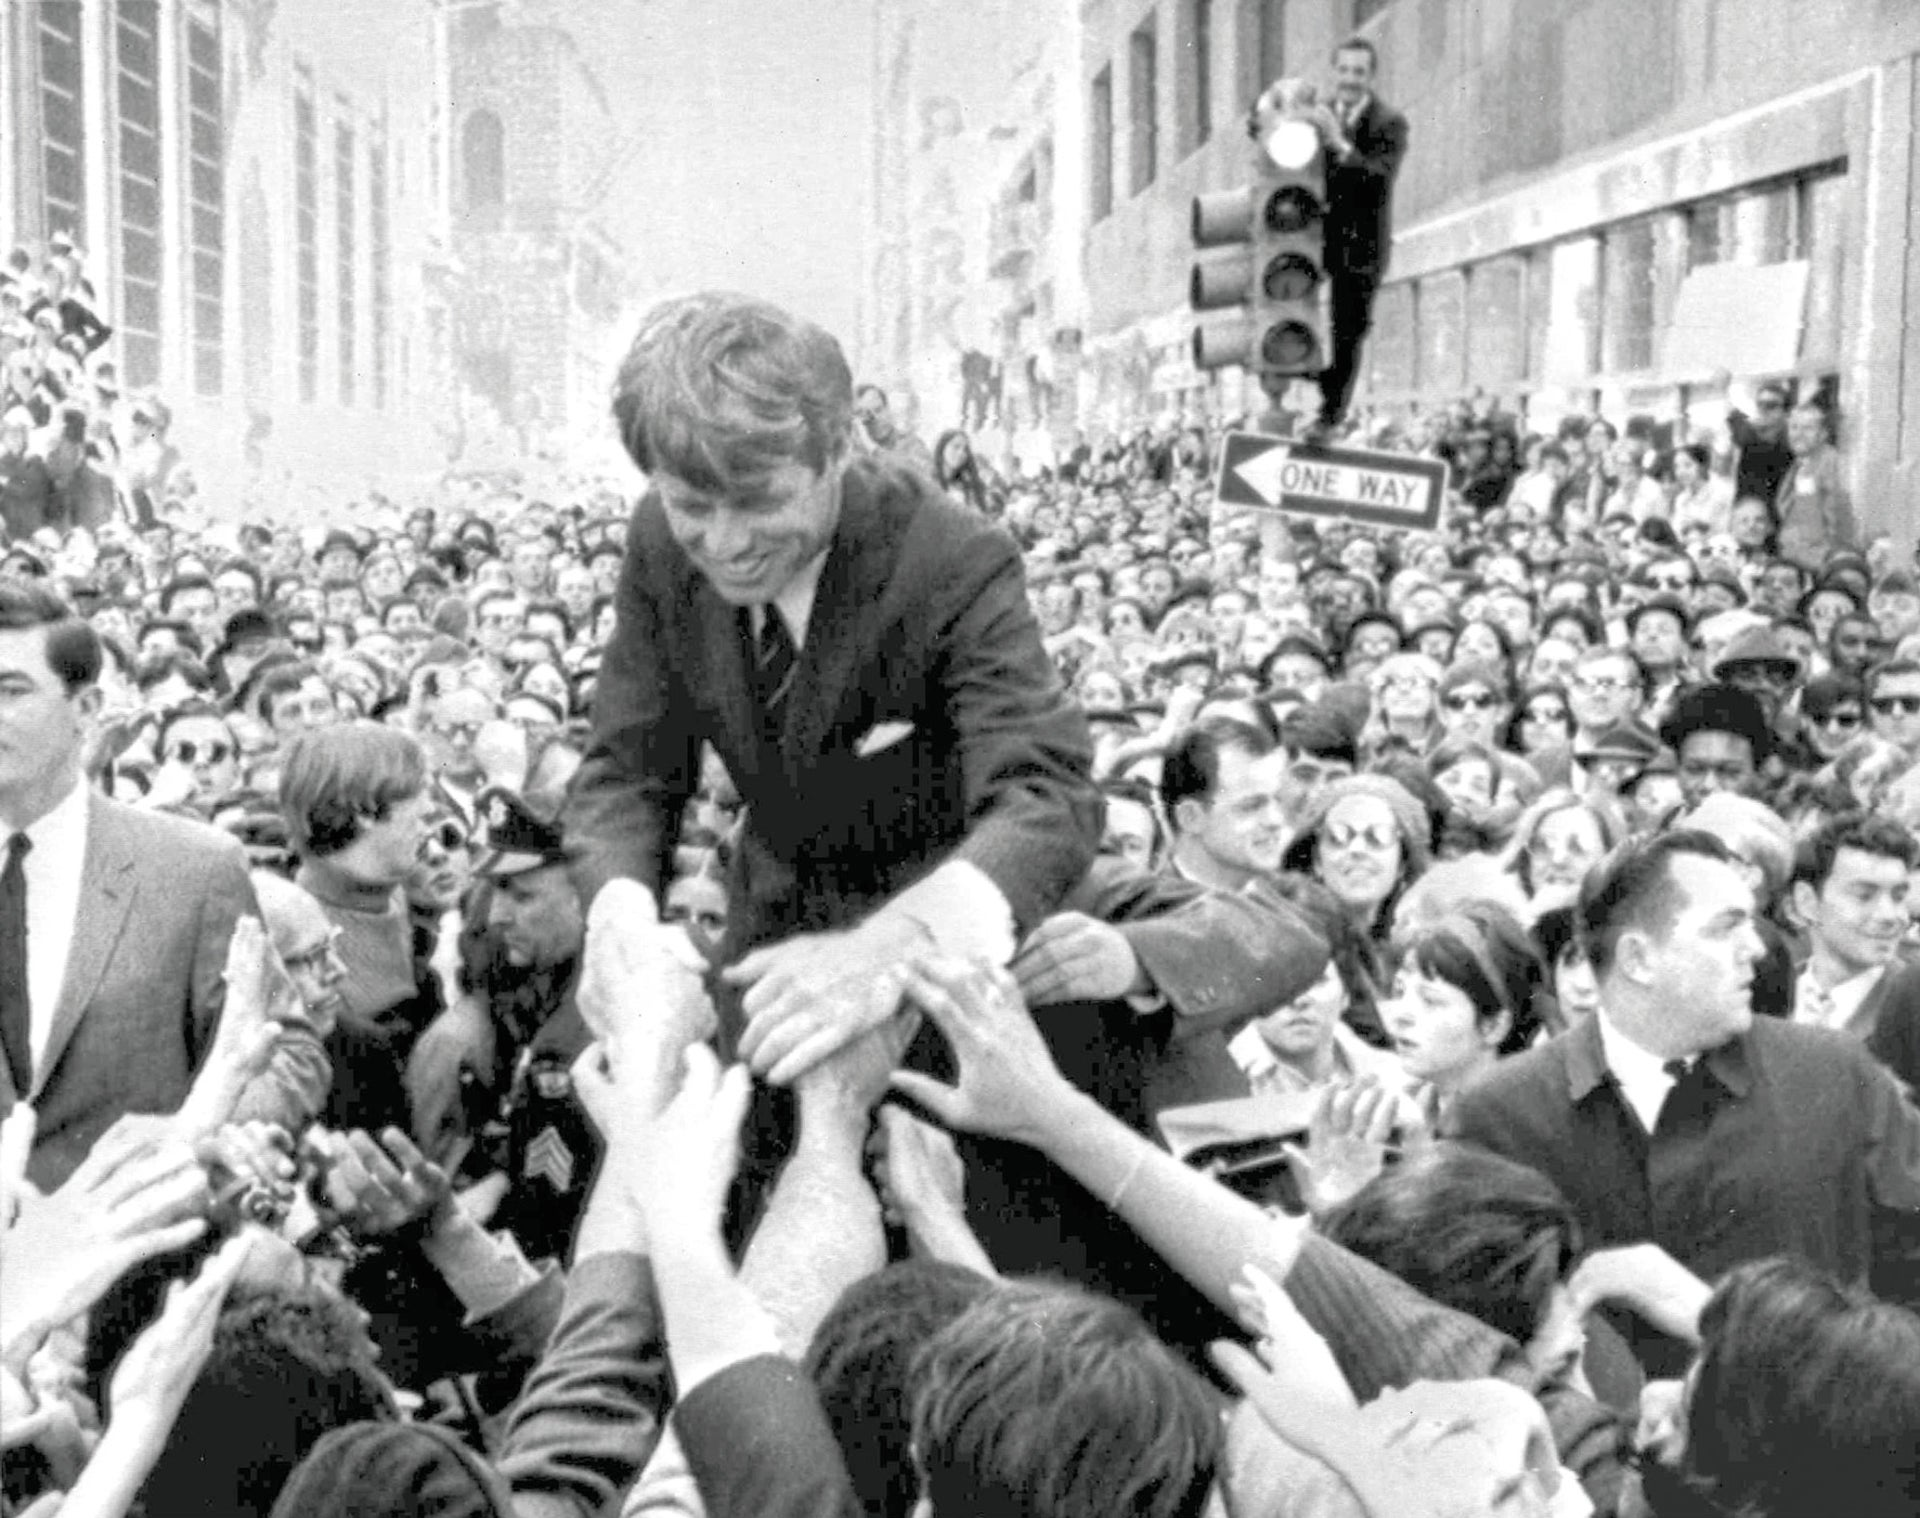 U.S. Sen. Robert F. Kennedy shakes hands with people in a crowd while campaigning for the Democratic party's presidential nomination in Philadelphia, April 2, 1968.